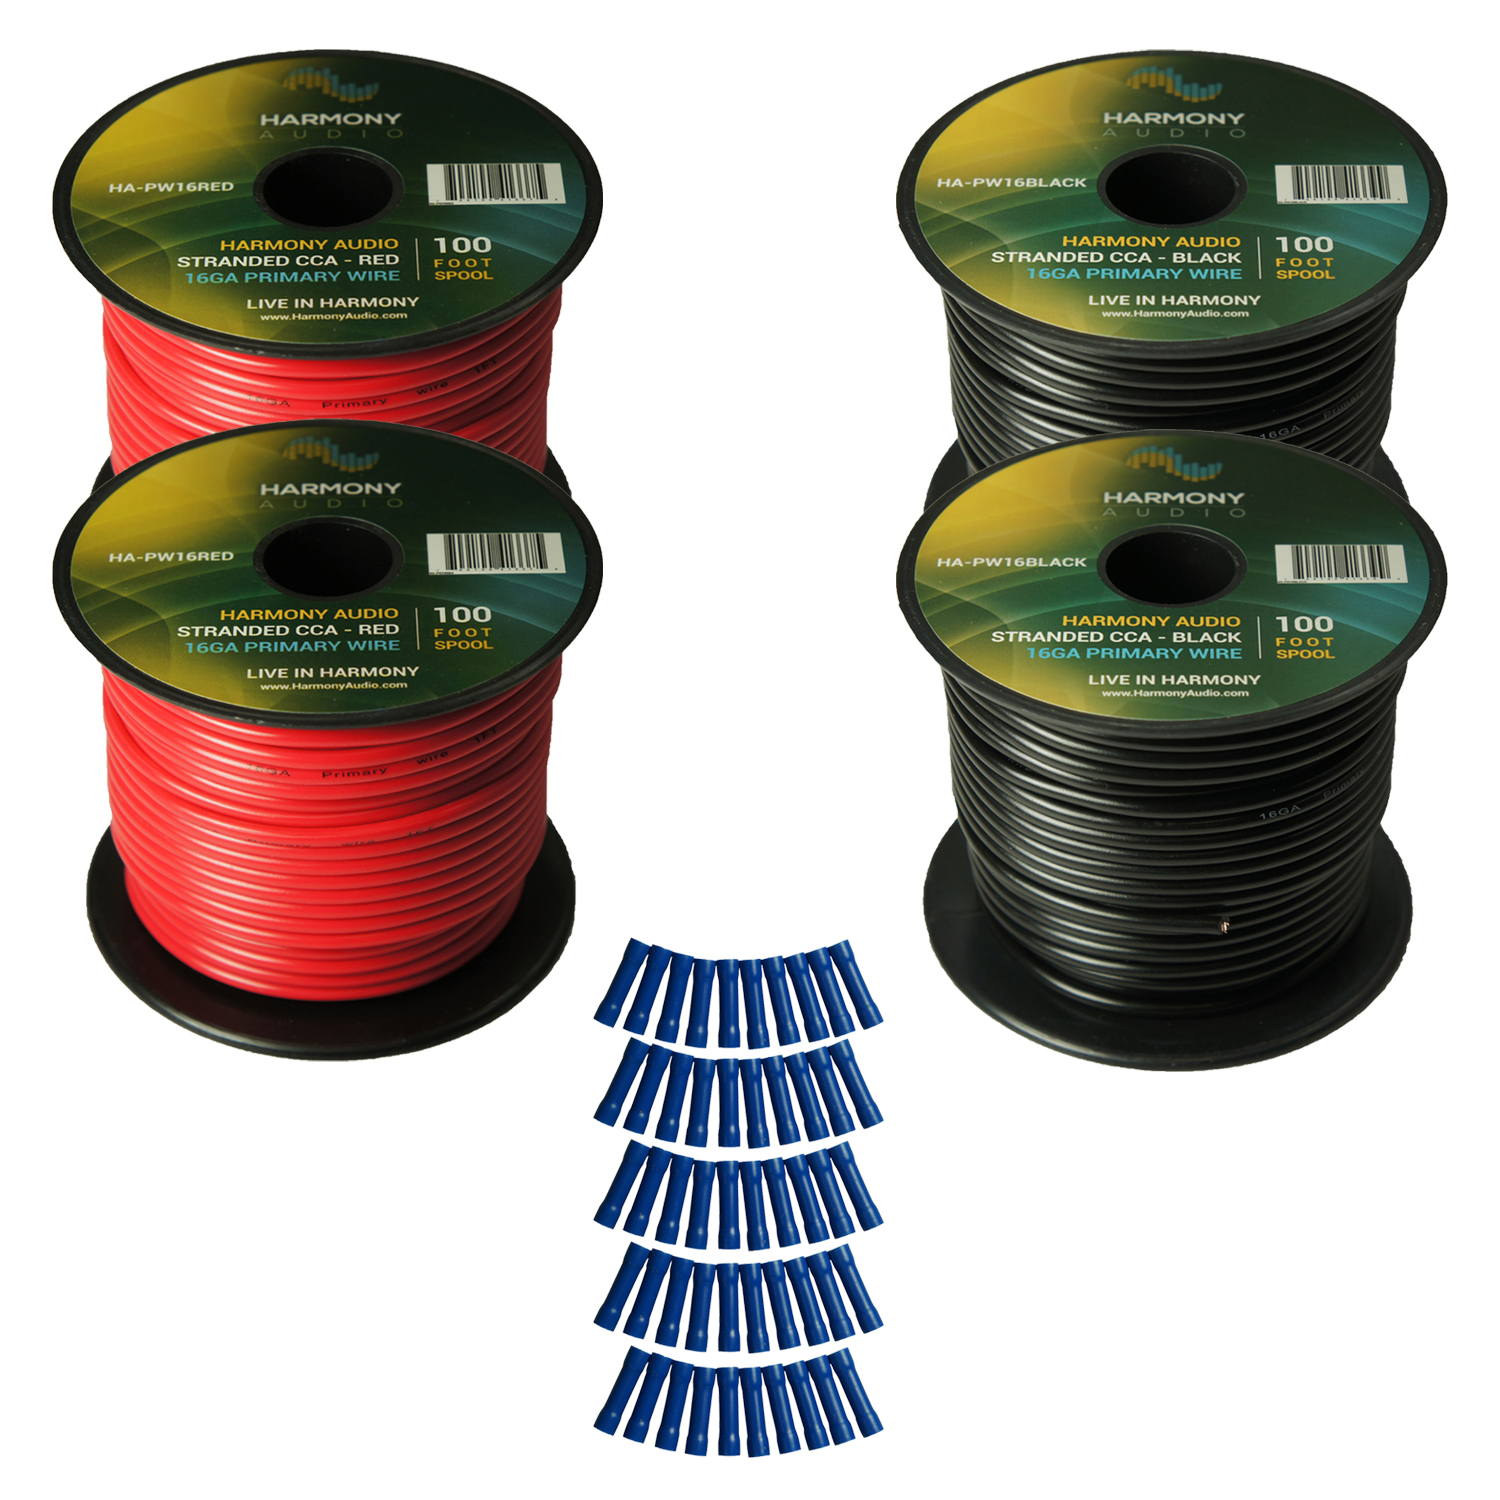 Harmony Audio Primary Single Conductor 16 Gauge Power or Ground Wire - 4 Rolls - 400 Feet - Red & Black for Car Audio / Trailer / Model Train / Remote